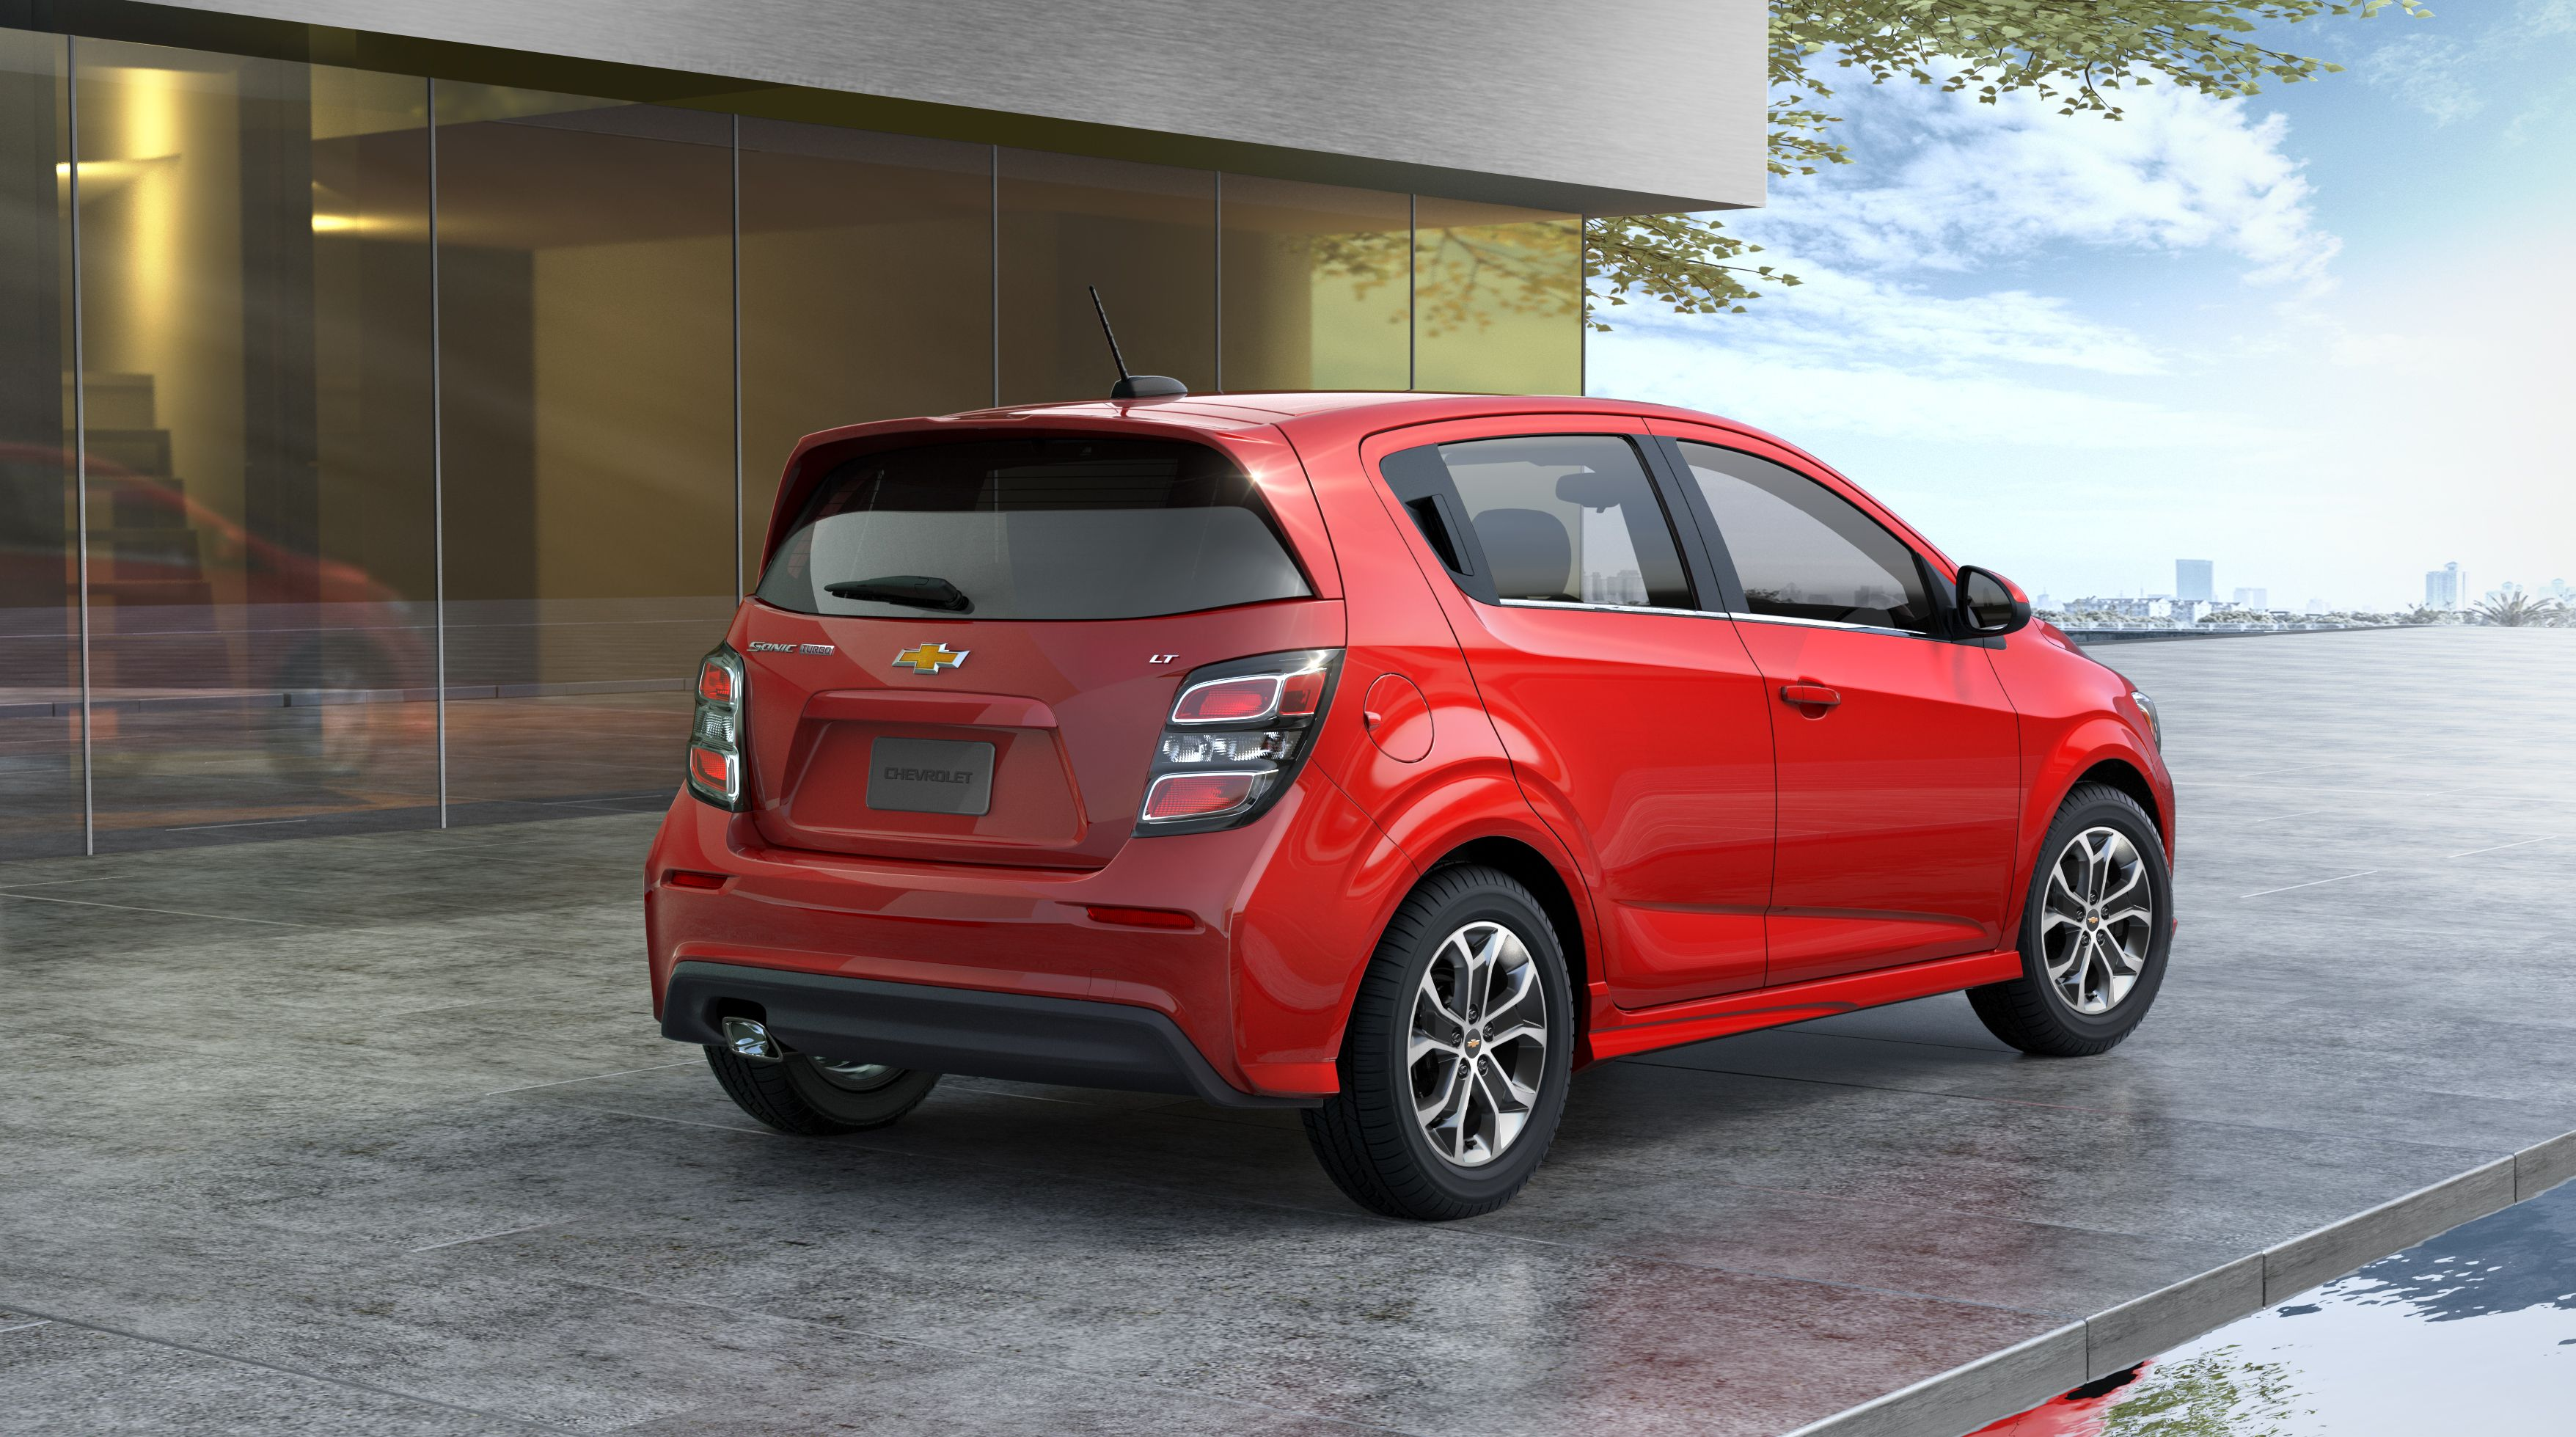 2020 Chevy Sonic Overview